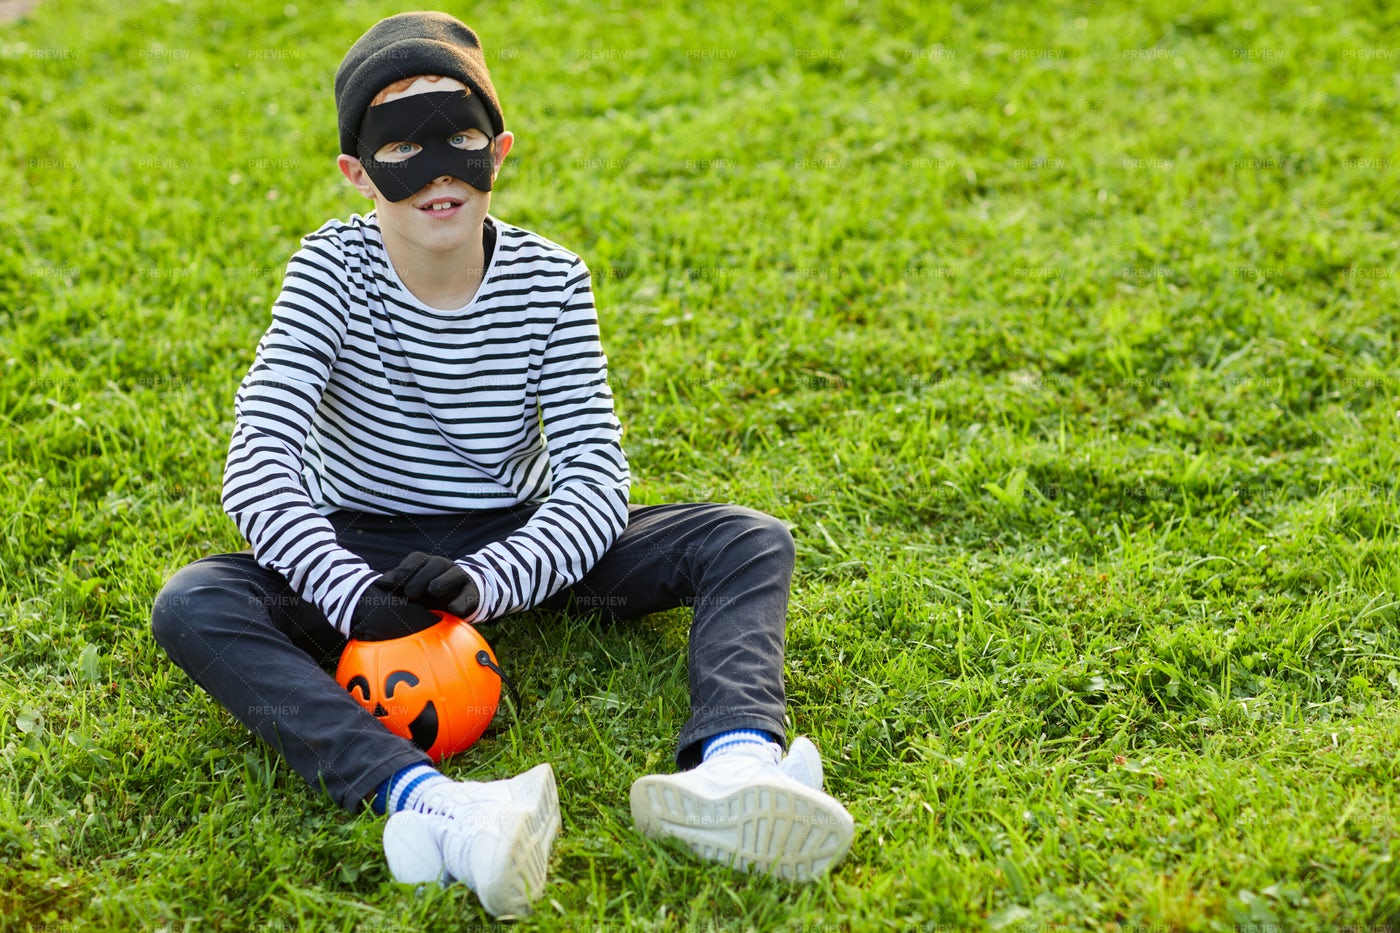 Little Boy Wearing Halloween...: Stock Photos